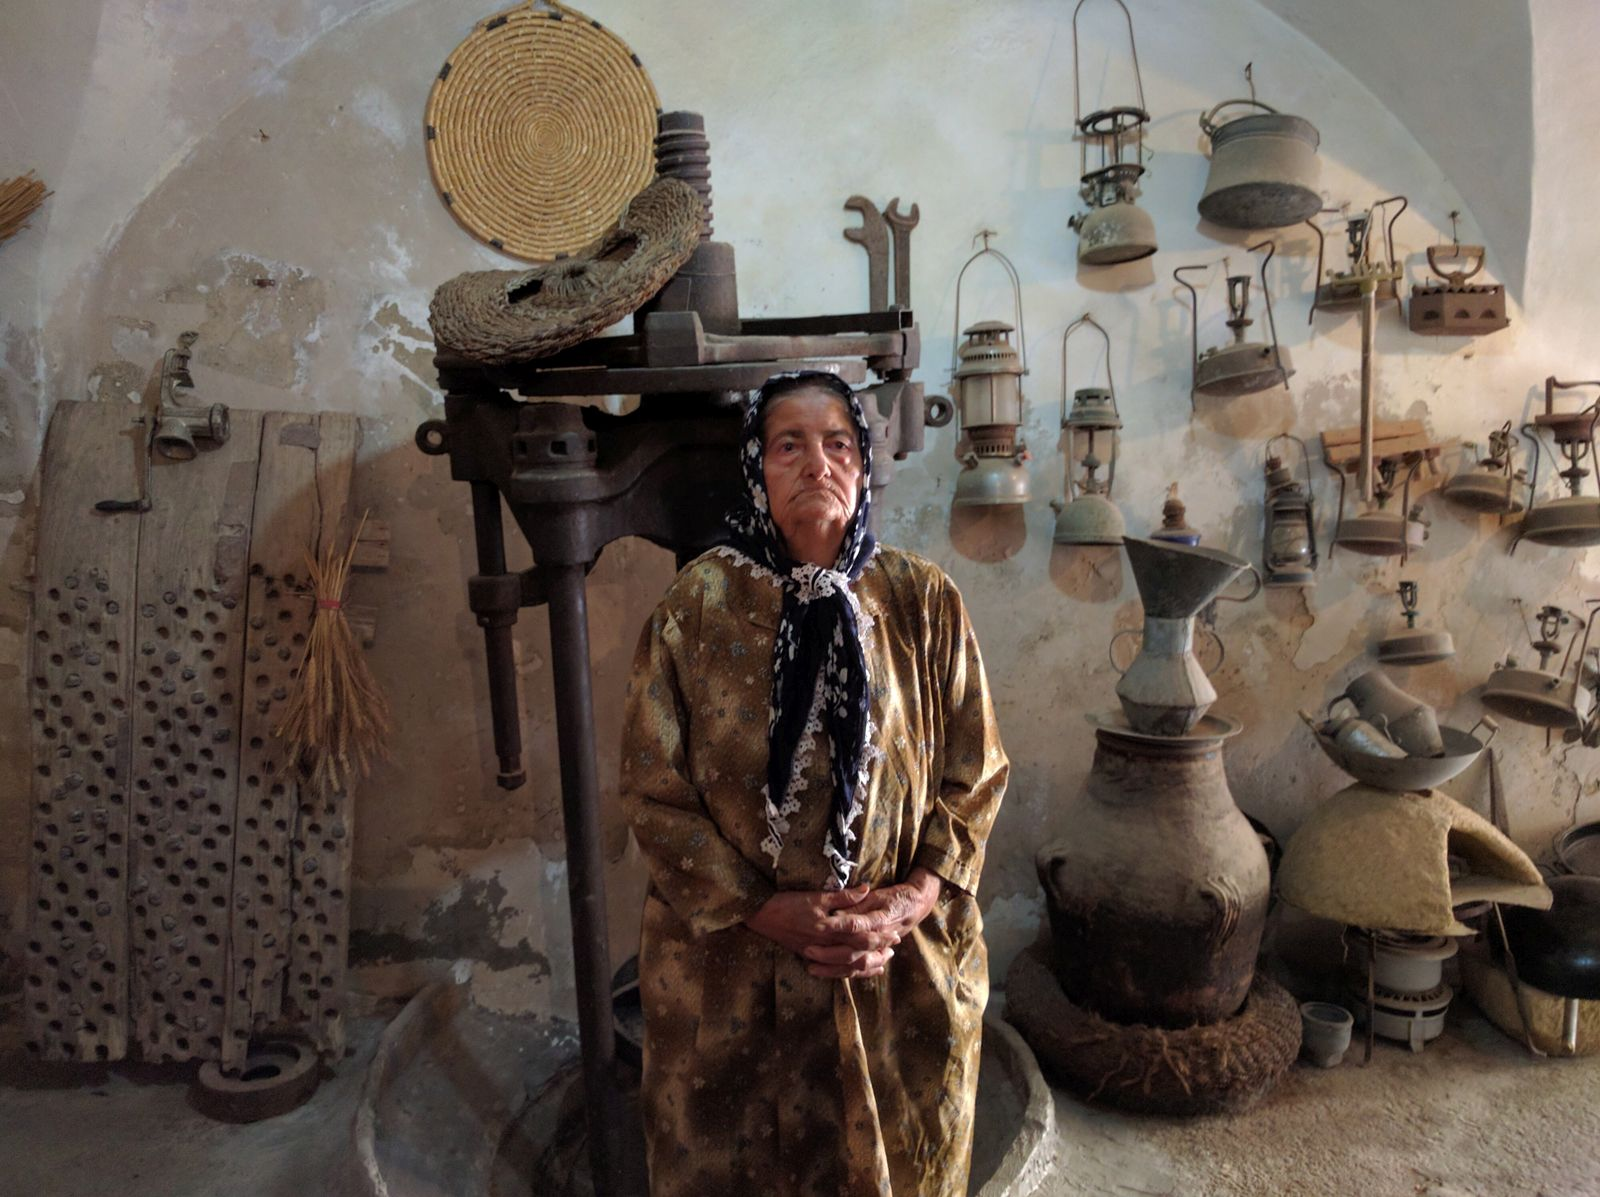 Nagma Huri welcomes visitors to her Deir Hanna olive press. Photo by Viva Sarah Press